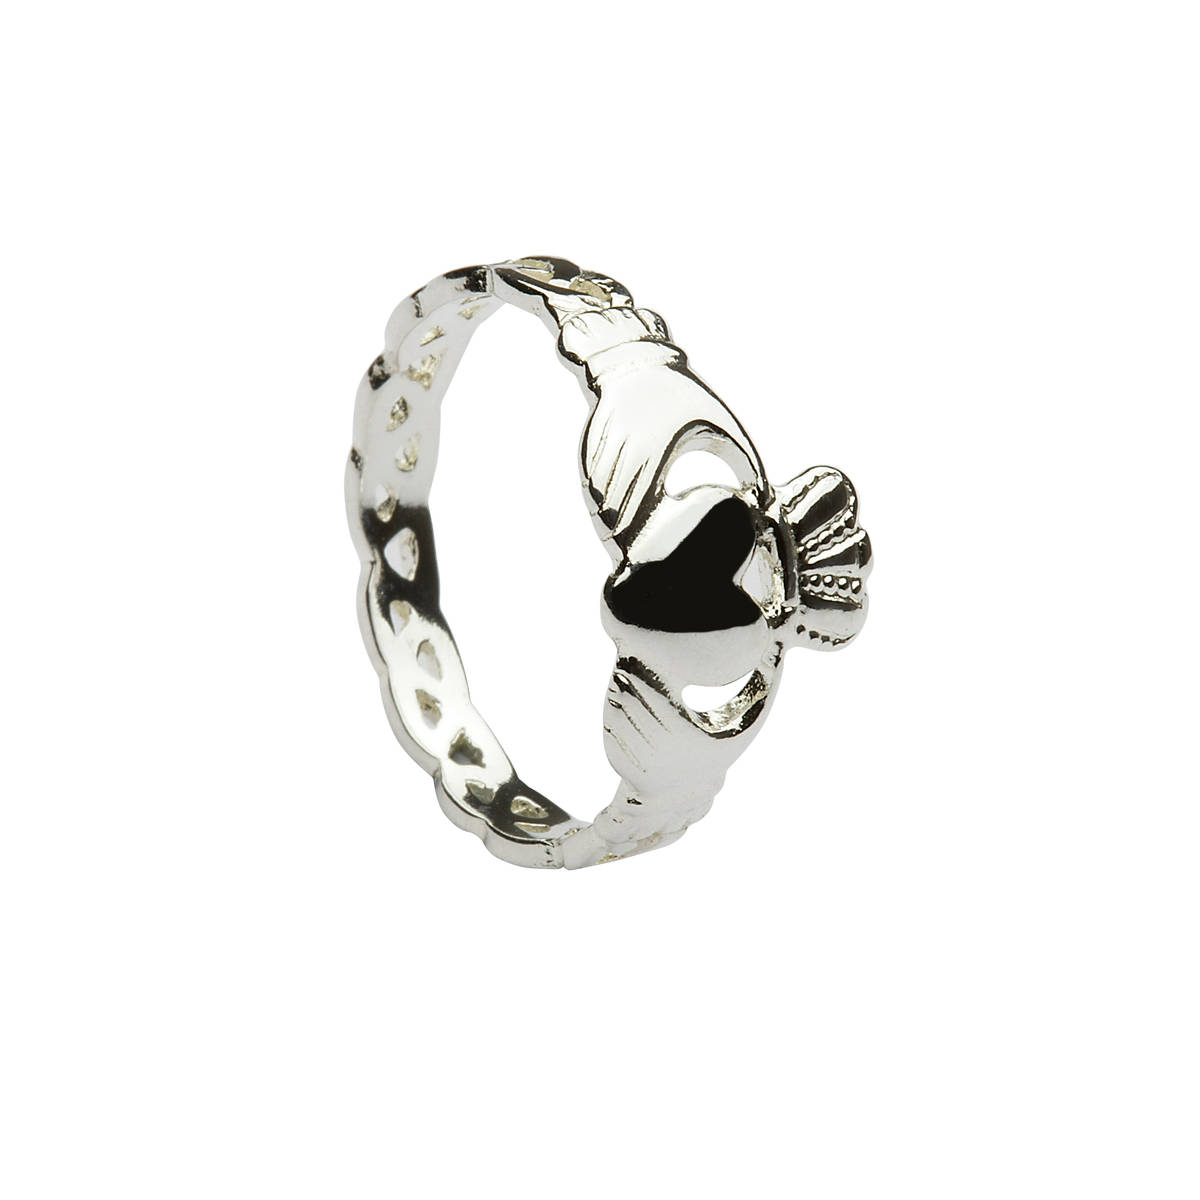 Silver classic claddagh ladies ring with celtic band